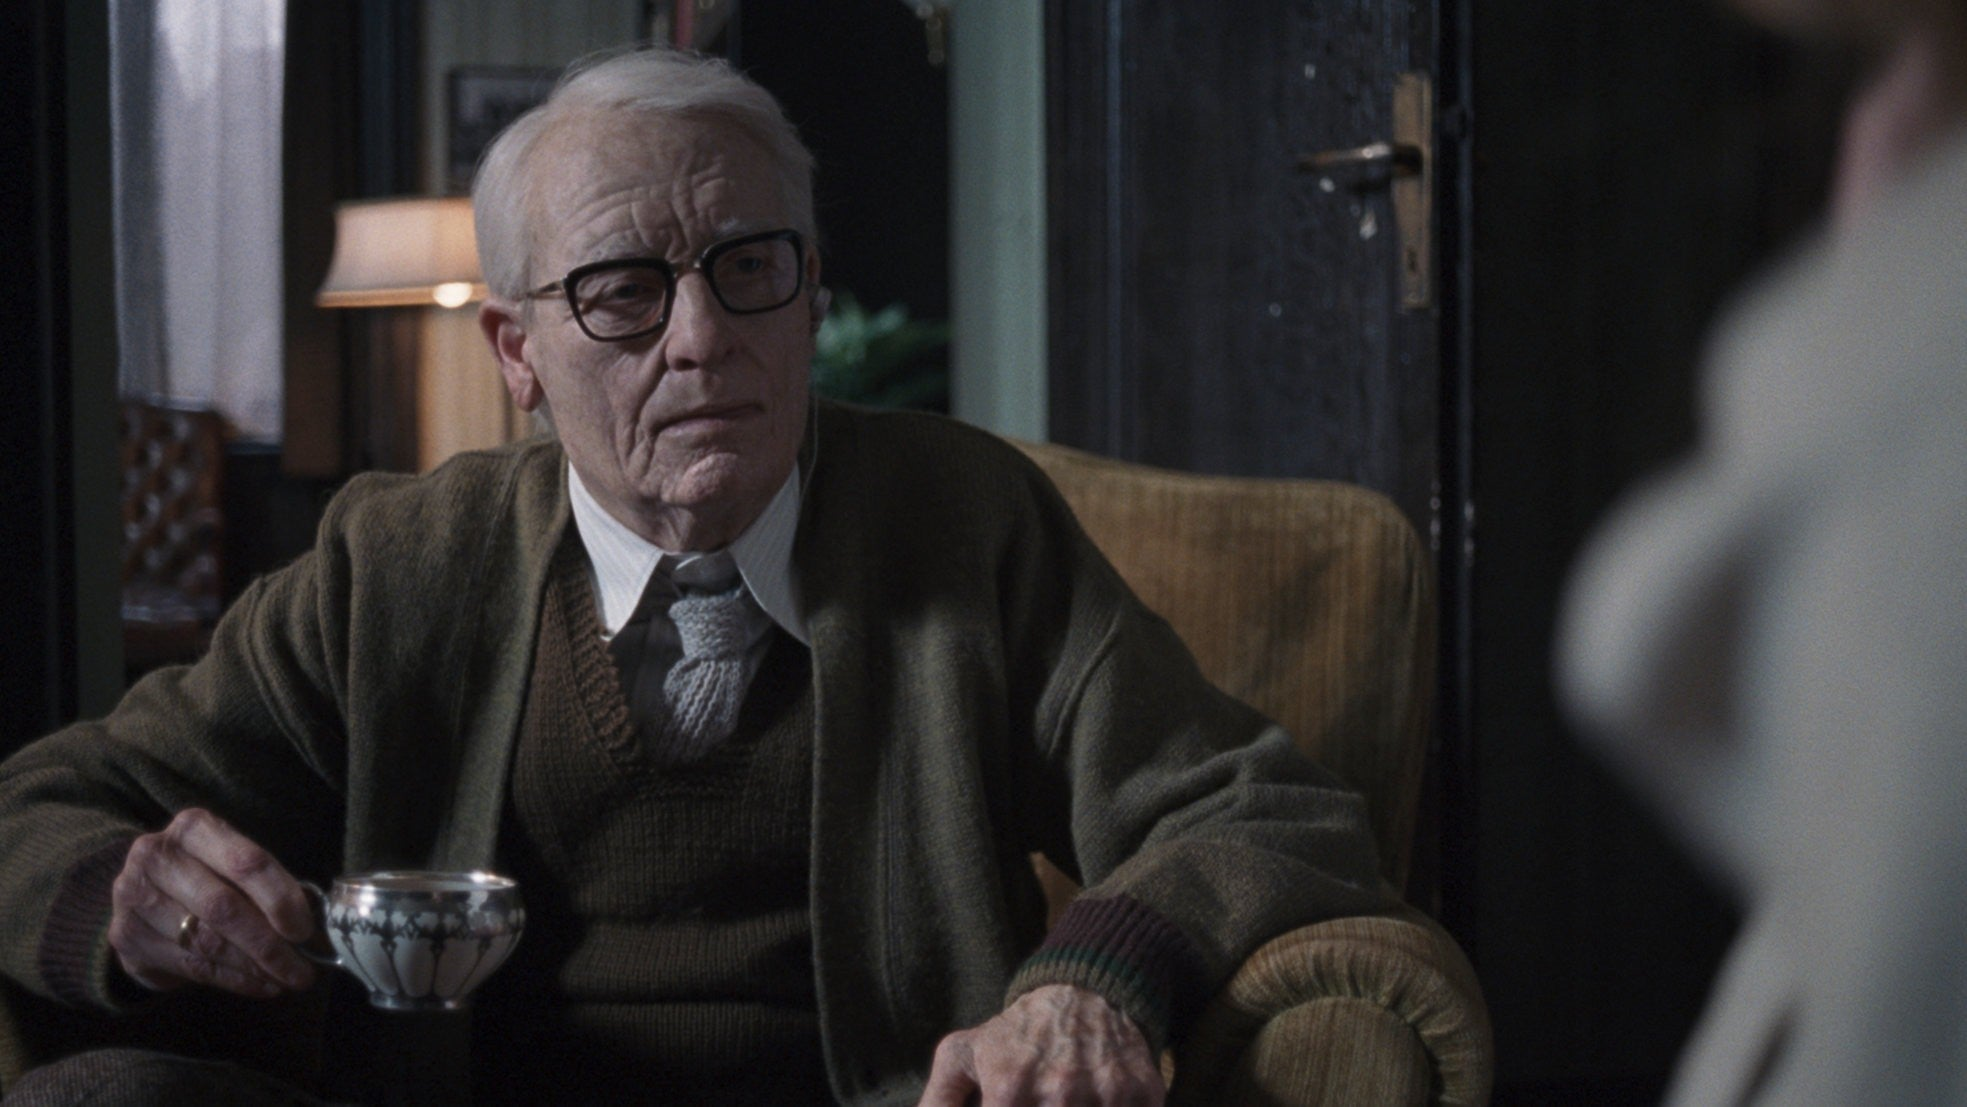 The True Identity Of Suspiria's Mysterious Lutz Ebersdorf Has Been Revealed